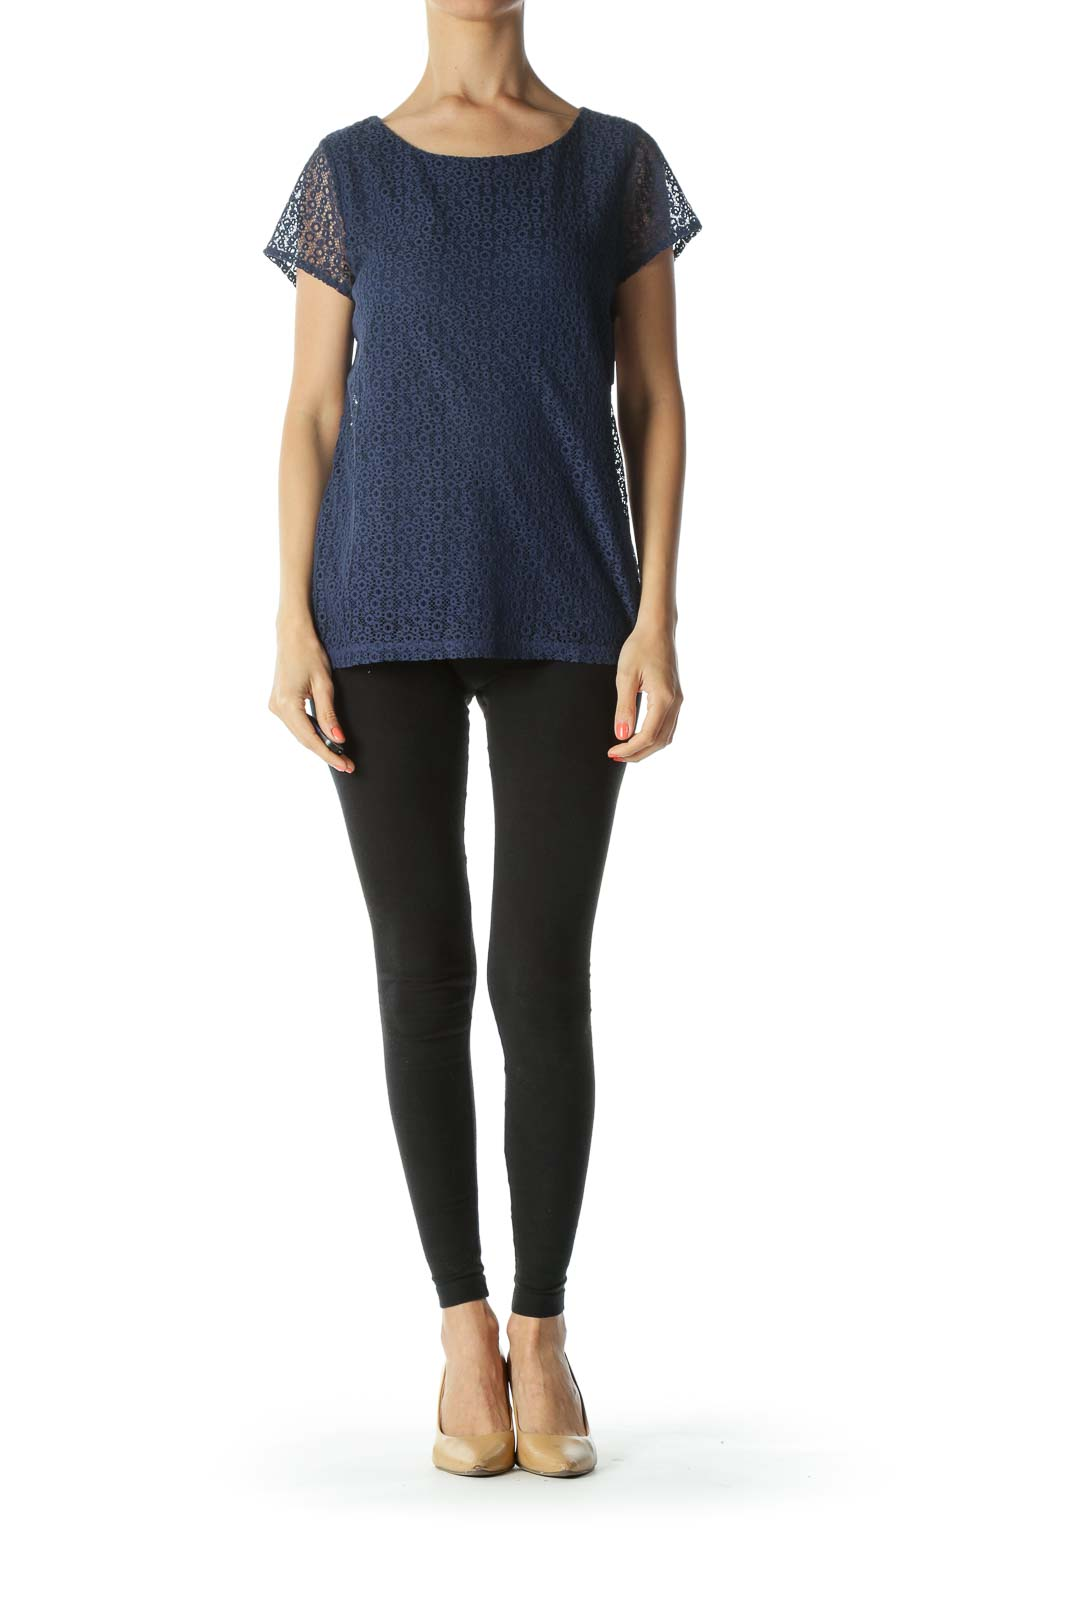 Blue Round-Neck Short-Sleeves Knit-Body Top